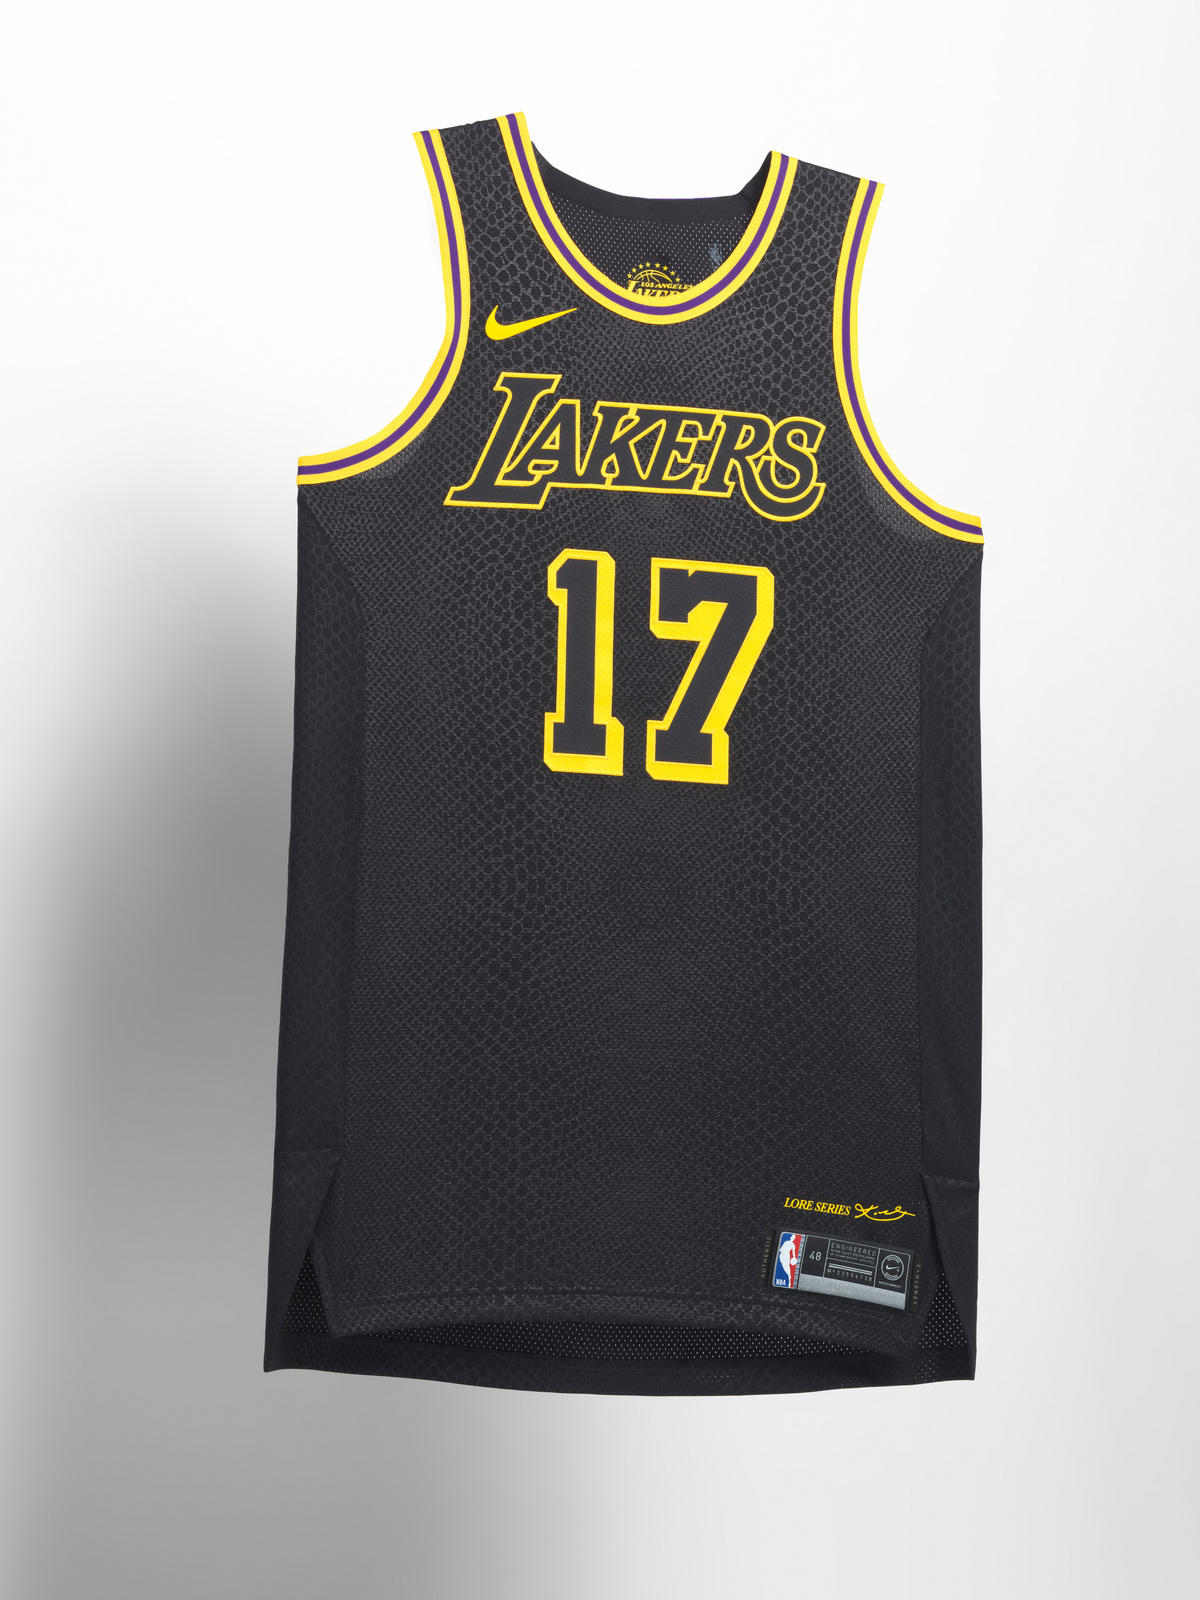 Nike NBA City Edition Uniform 39. Los Angeles Lakers 54a5537a8